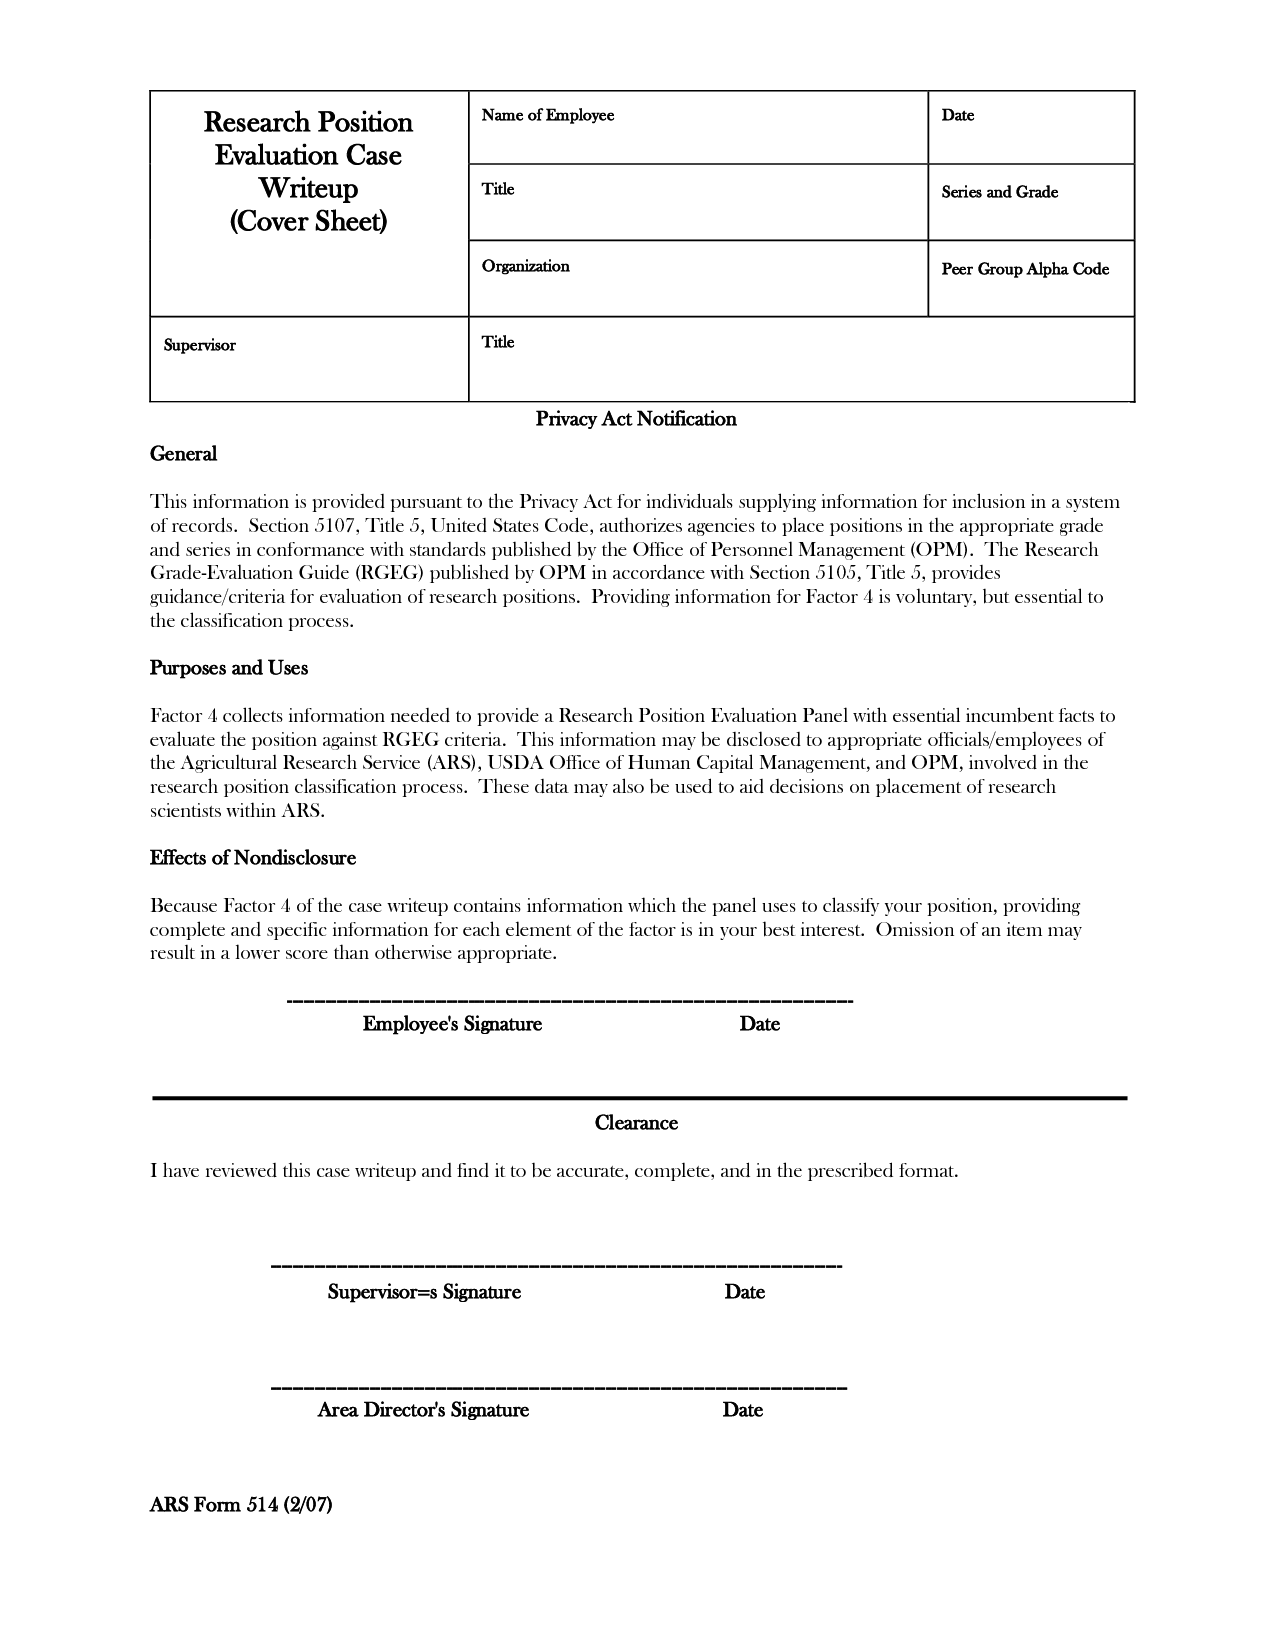 Explore Cv Template, Templates Free, And More! Emloyment Write Up ...